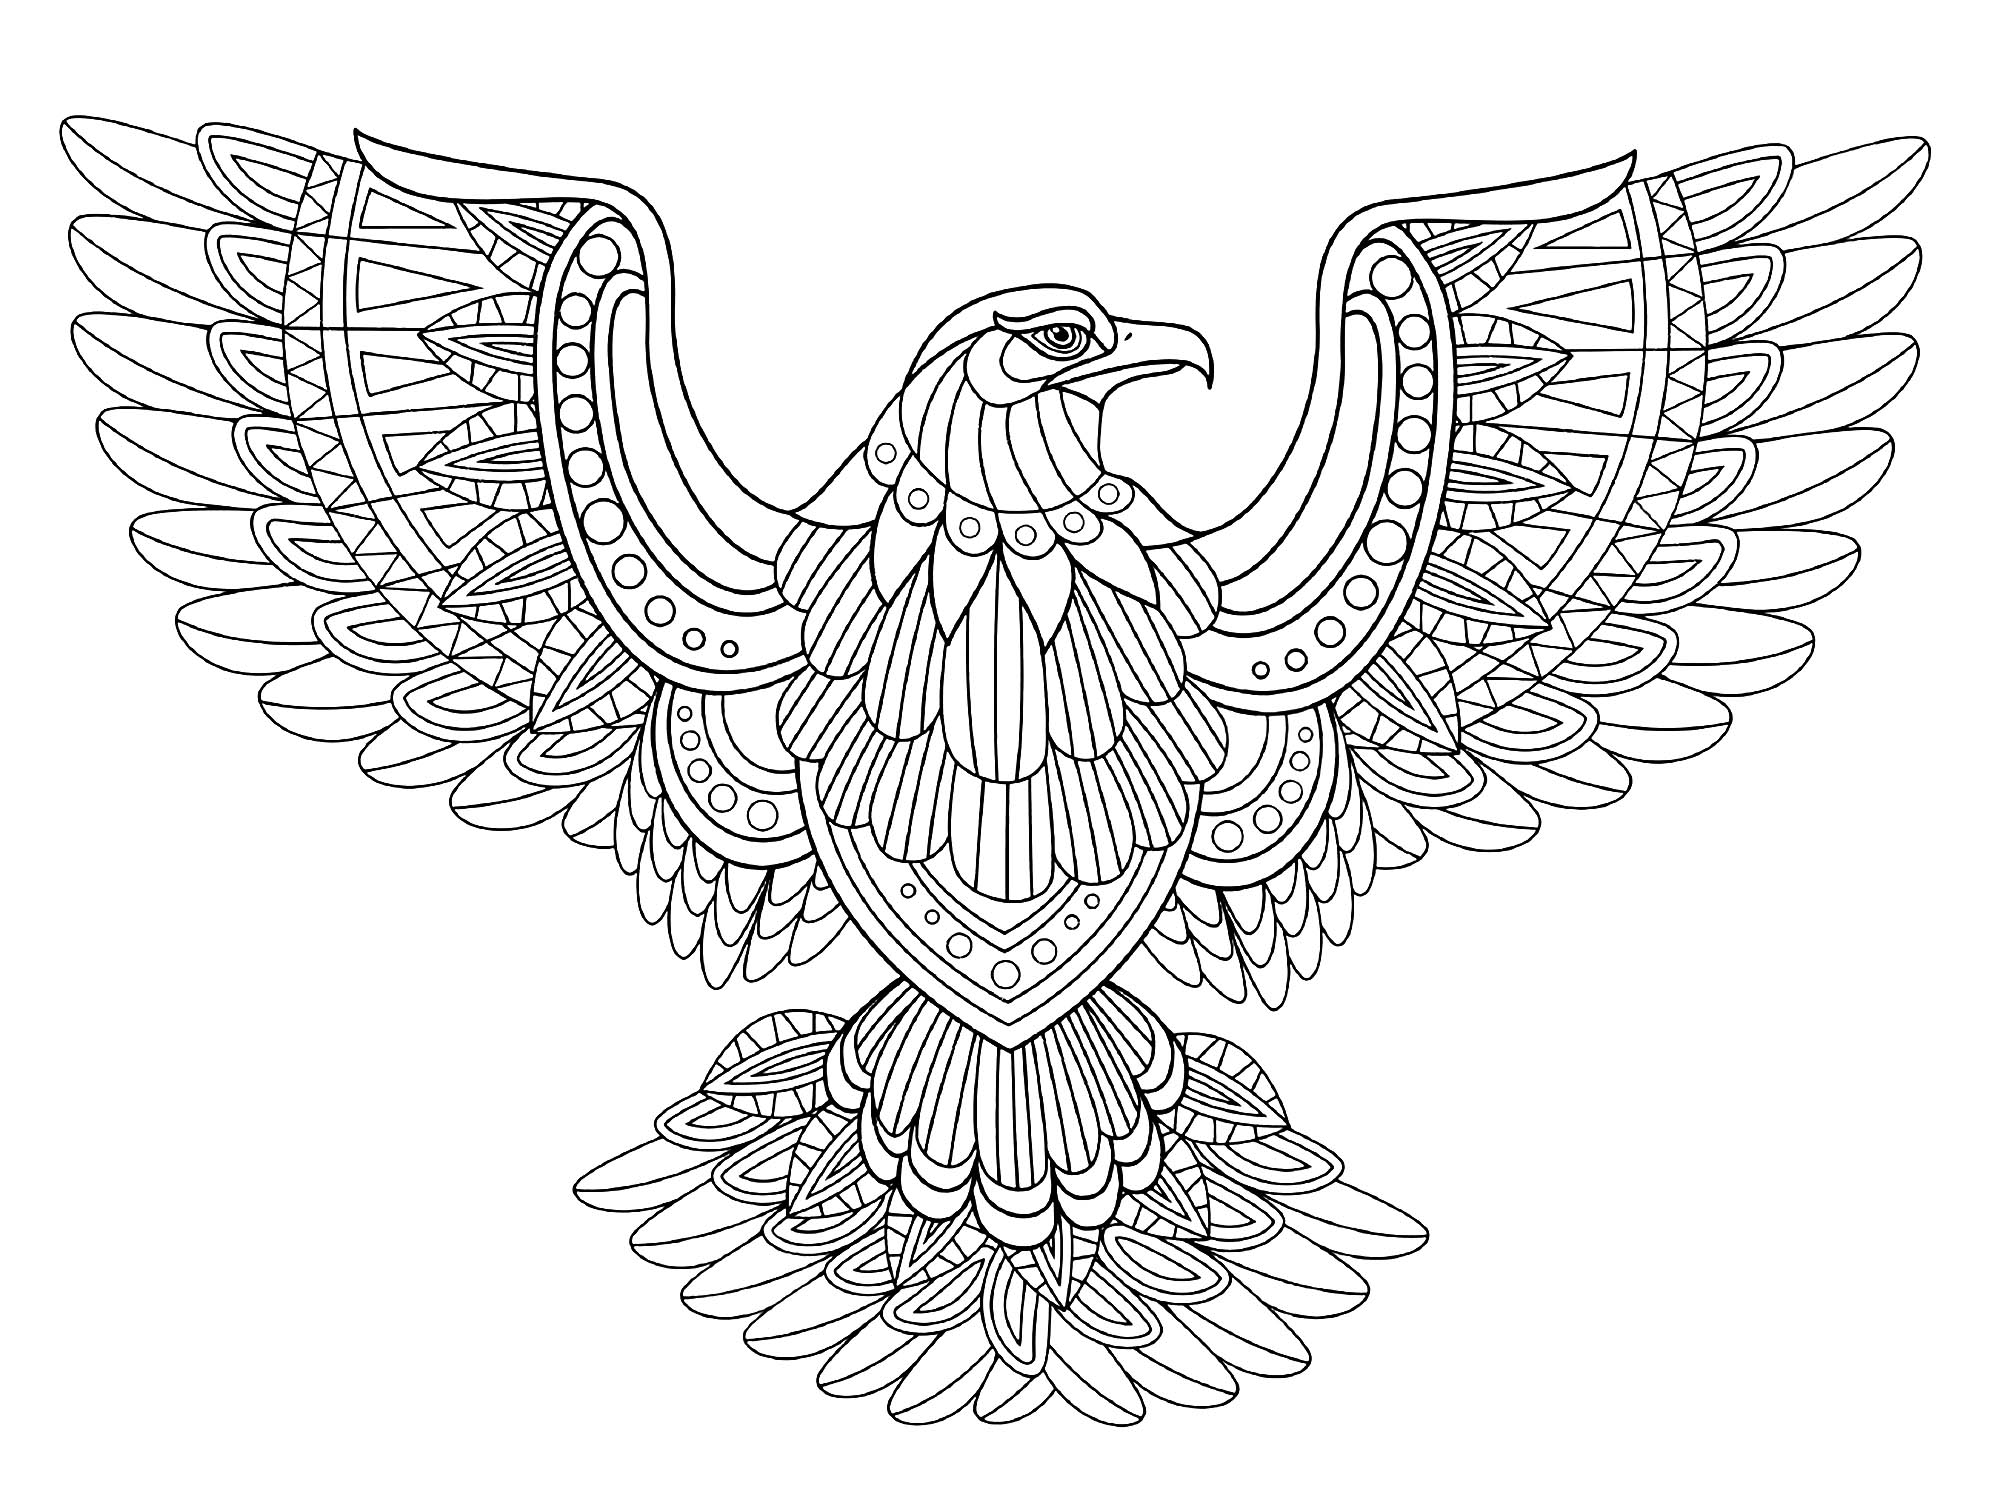 eagle coloring pages bald eagle zentangle page adult hard advanced coloring coloring eagle pages